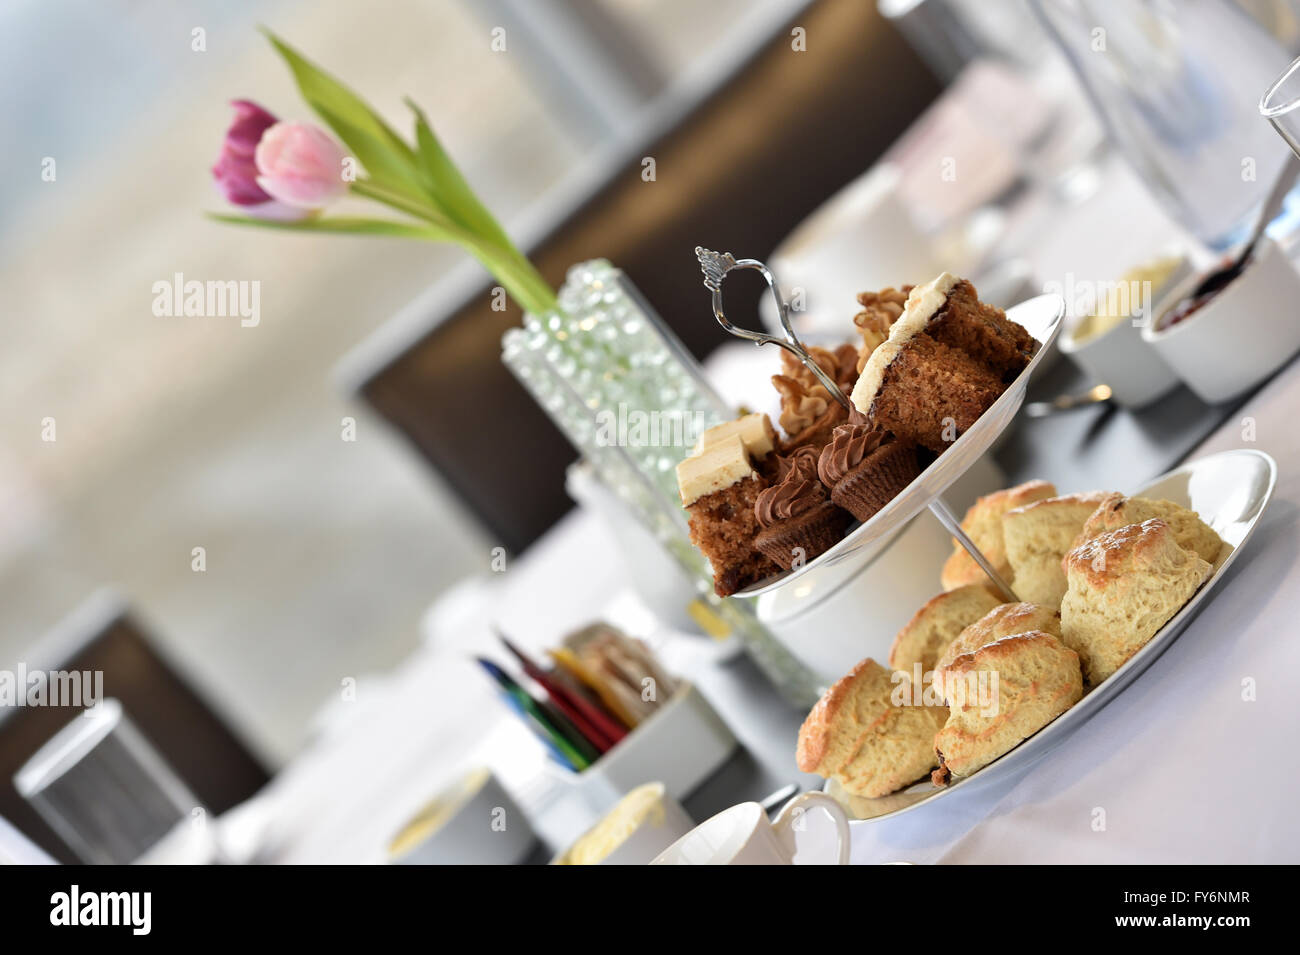 Afternoon tea in a business environment,tulips, scones and cakes - Stock Image